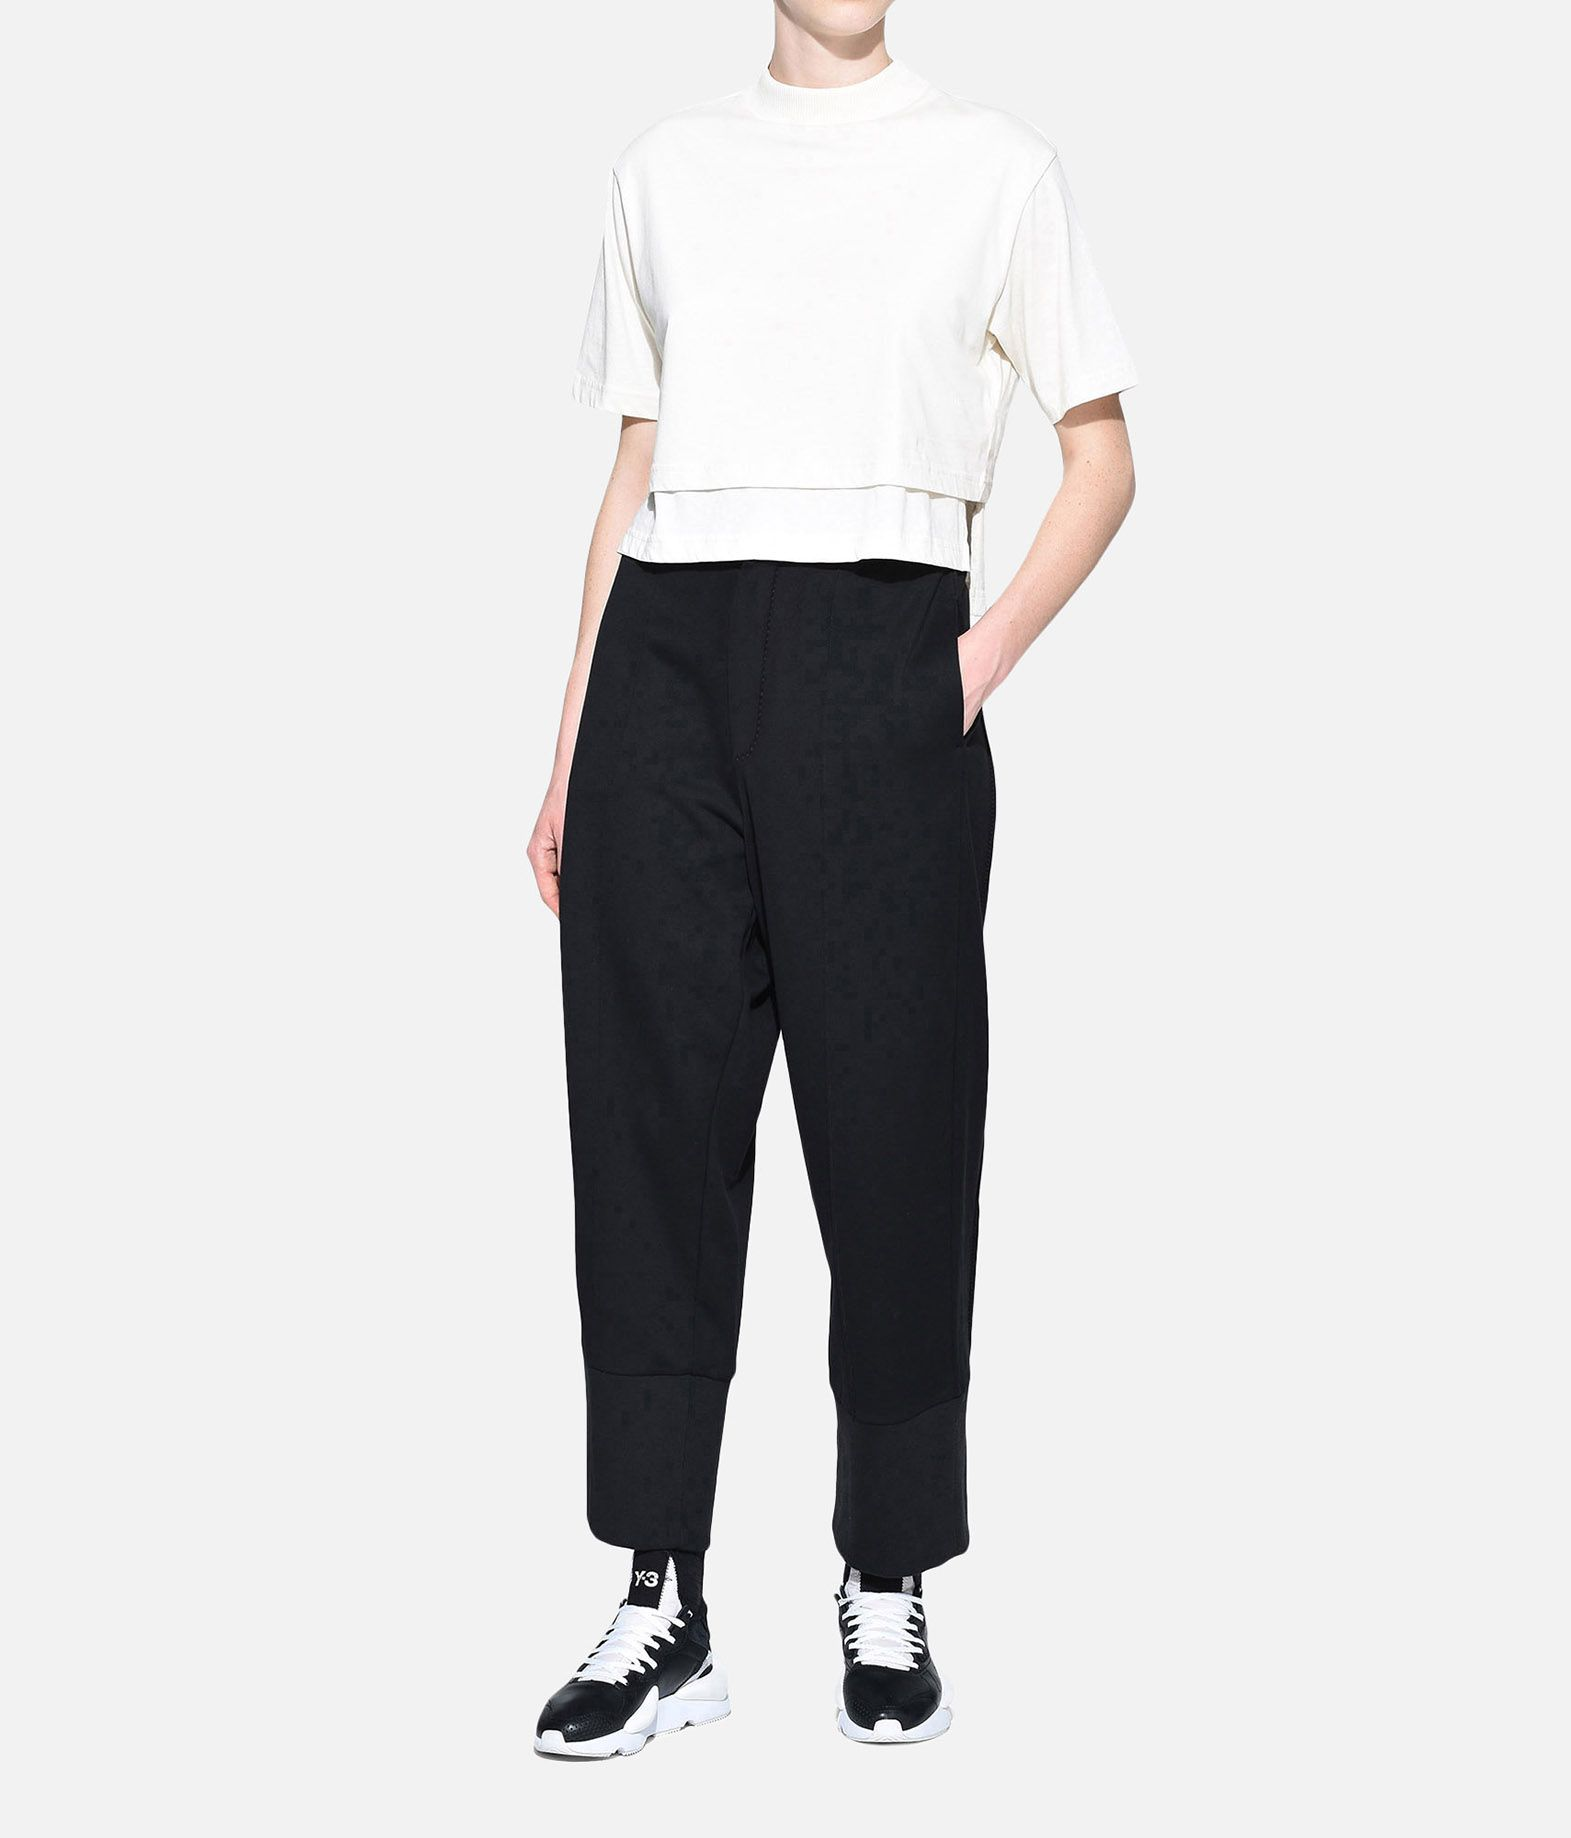 Y-3 Y-3 Sashiko Pants Casual pants Woman a